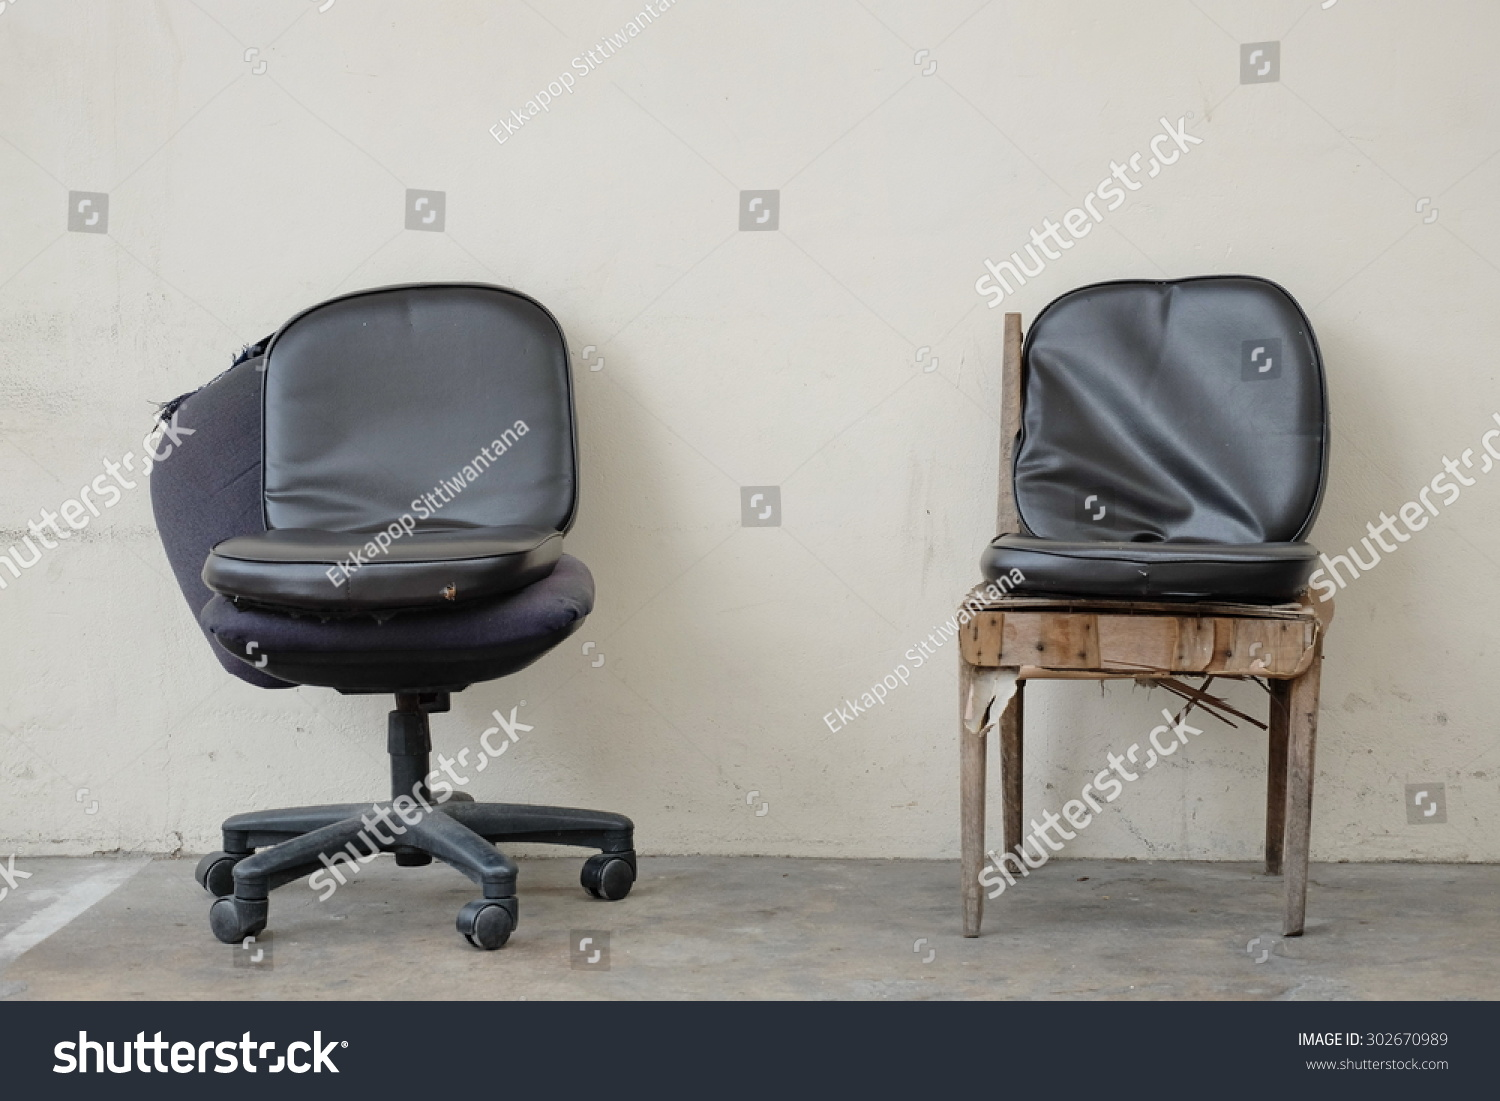 Two Handicapped Chairs Stock Photo 302670989 - Shutterstock